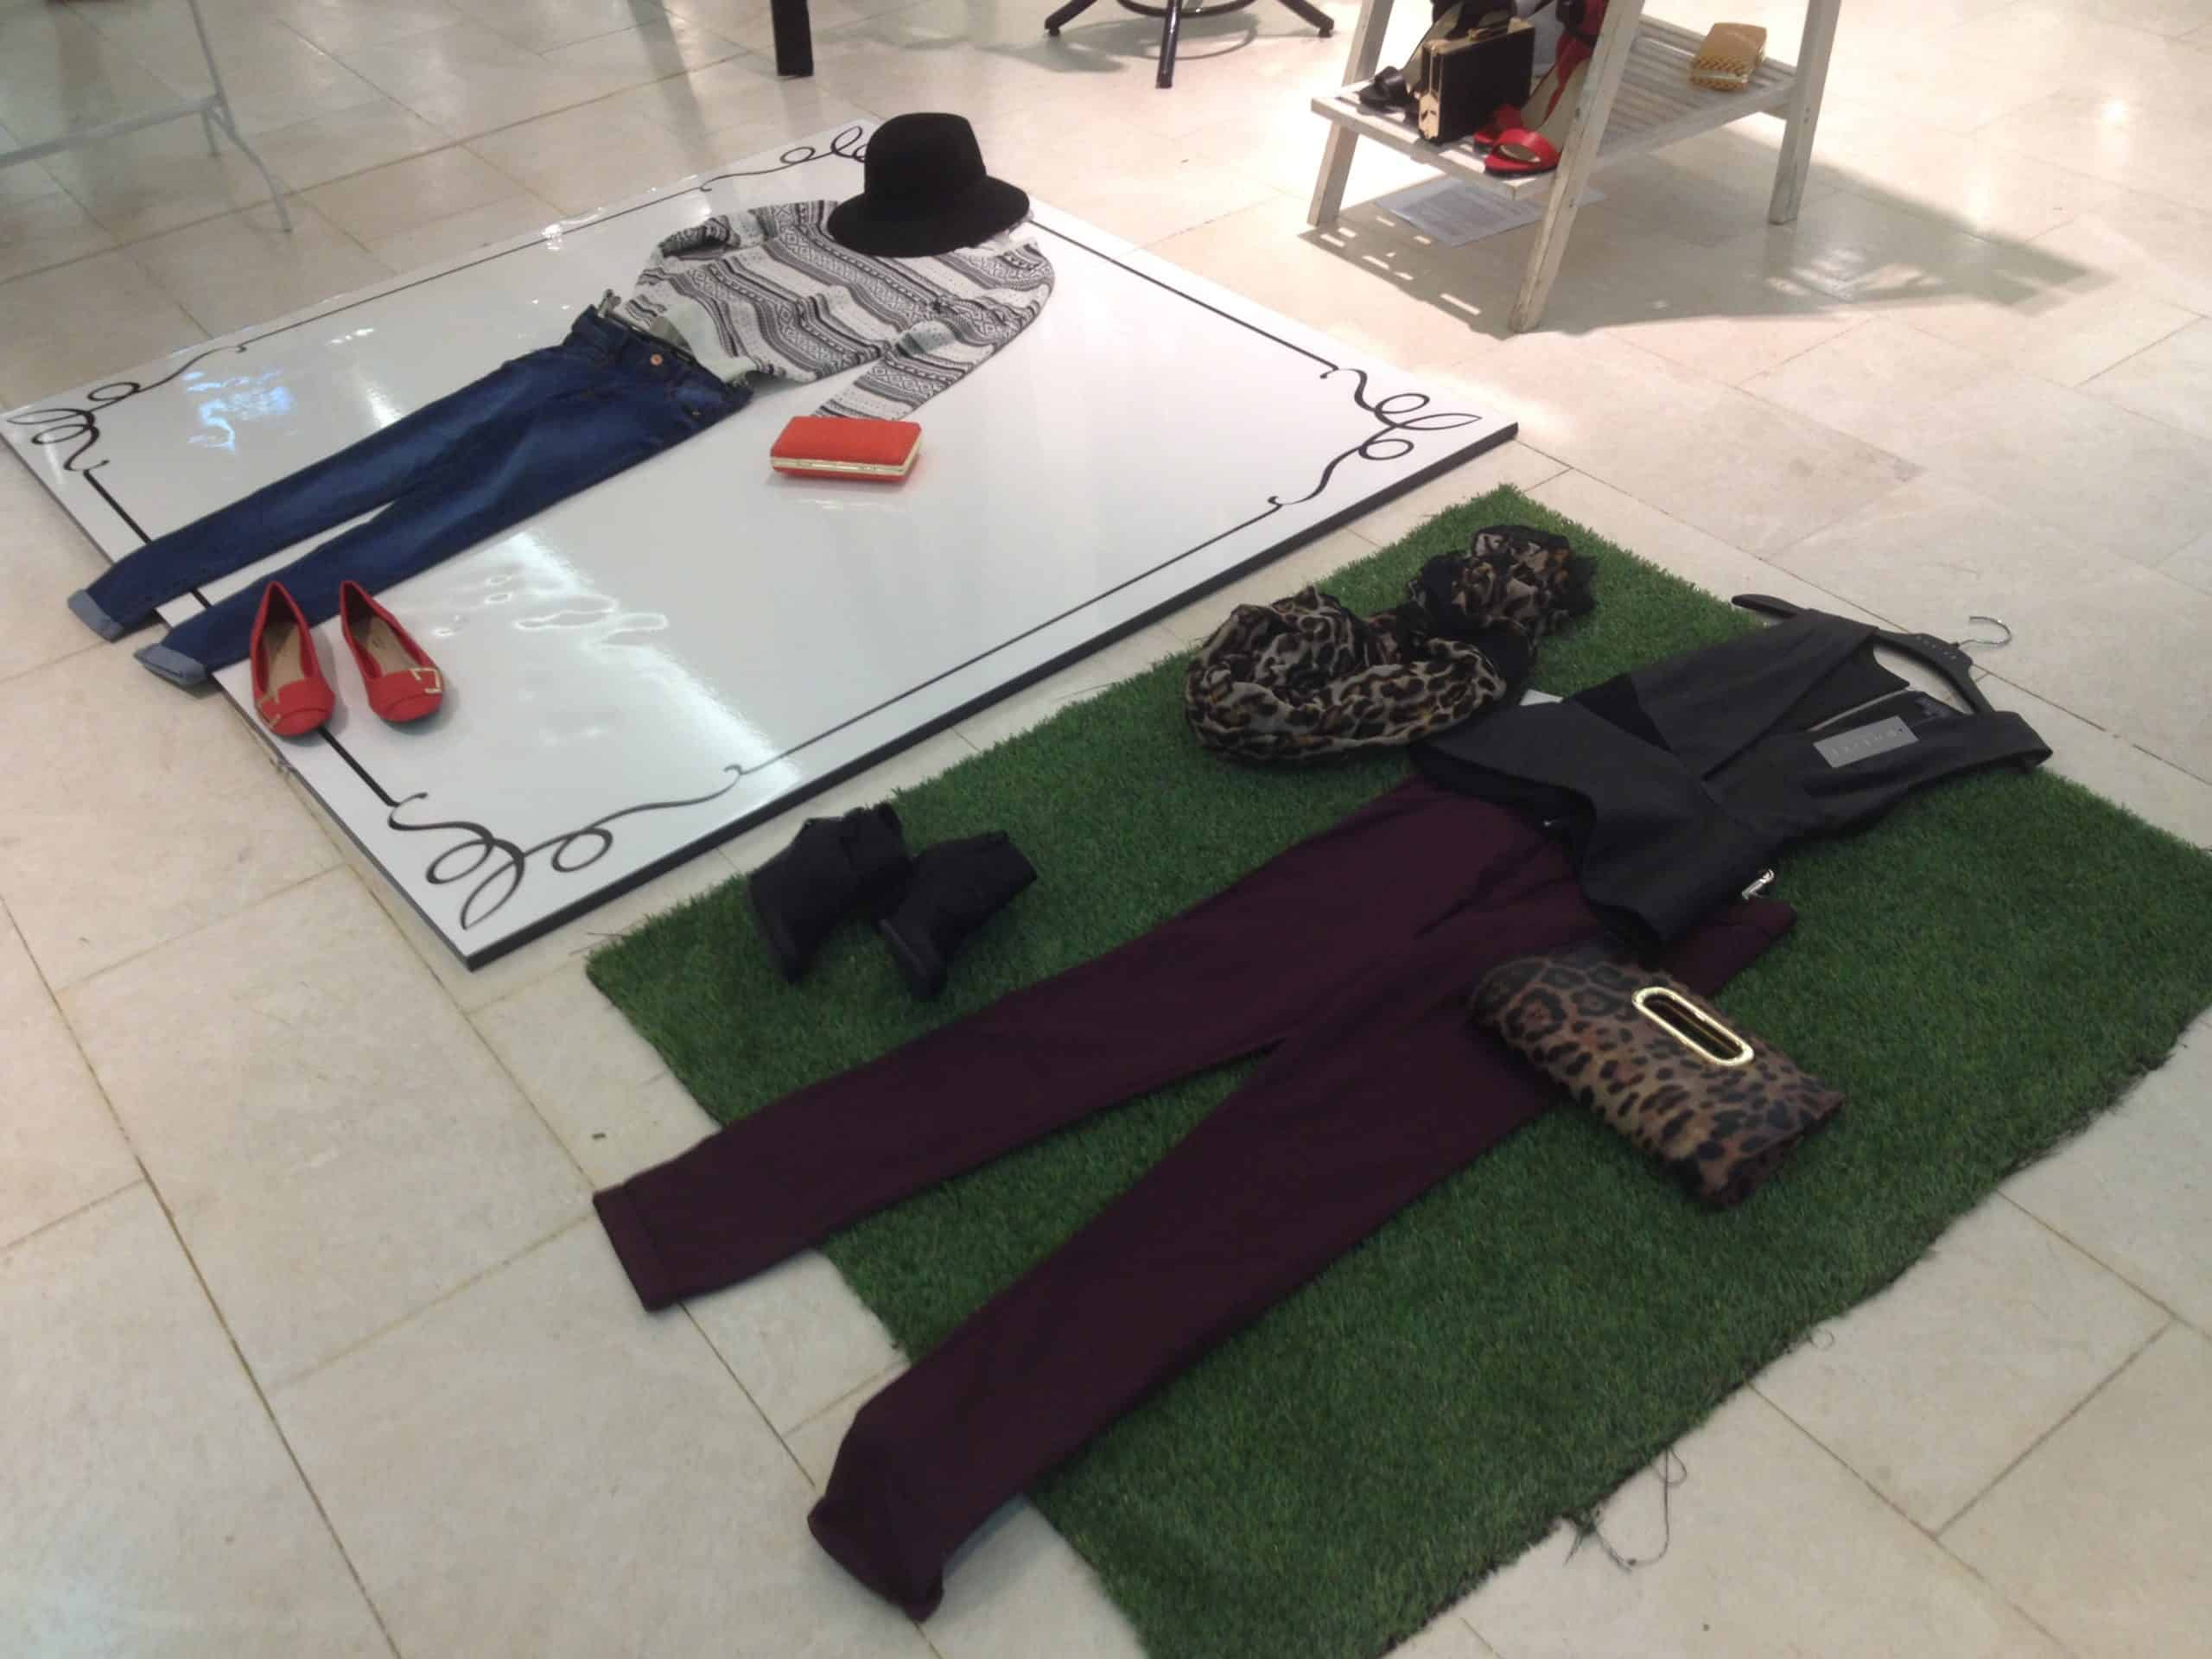 Outfits are laid out on the floor of a clothing store.